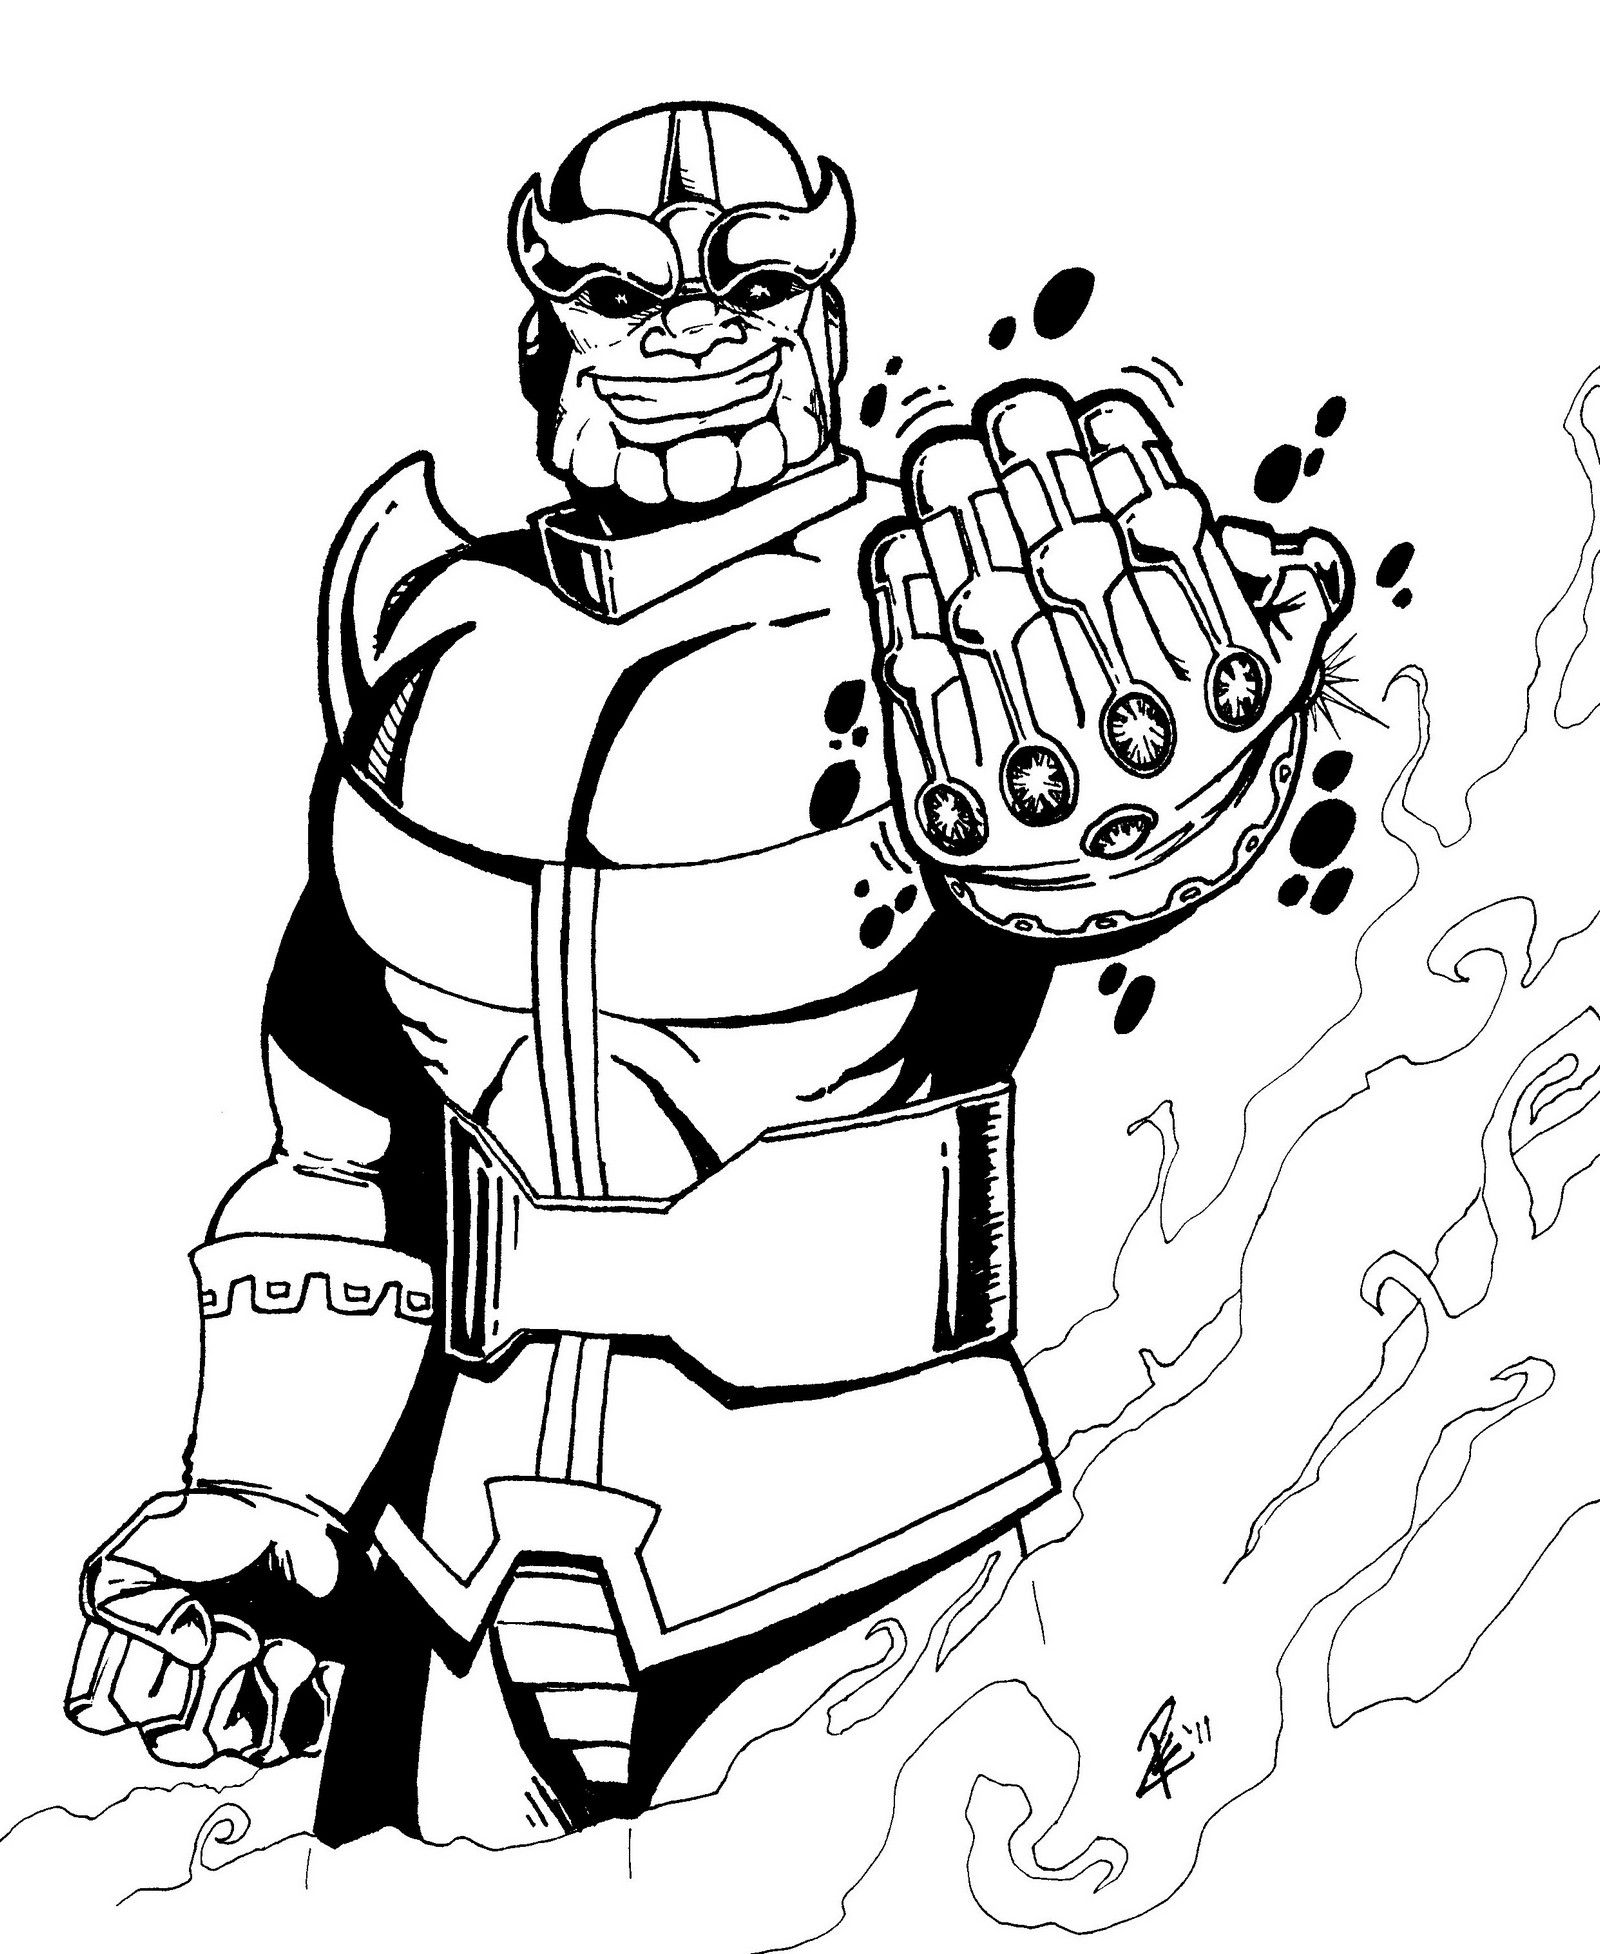 thanos guardians of the galaxy coloring sheet | Avengers ...